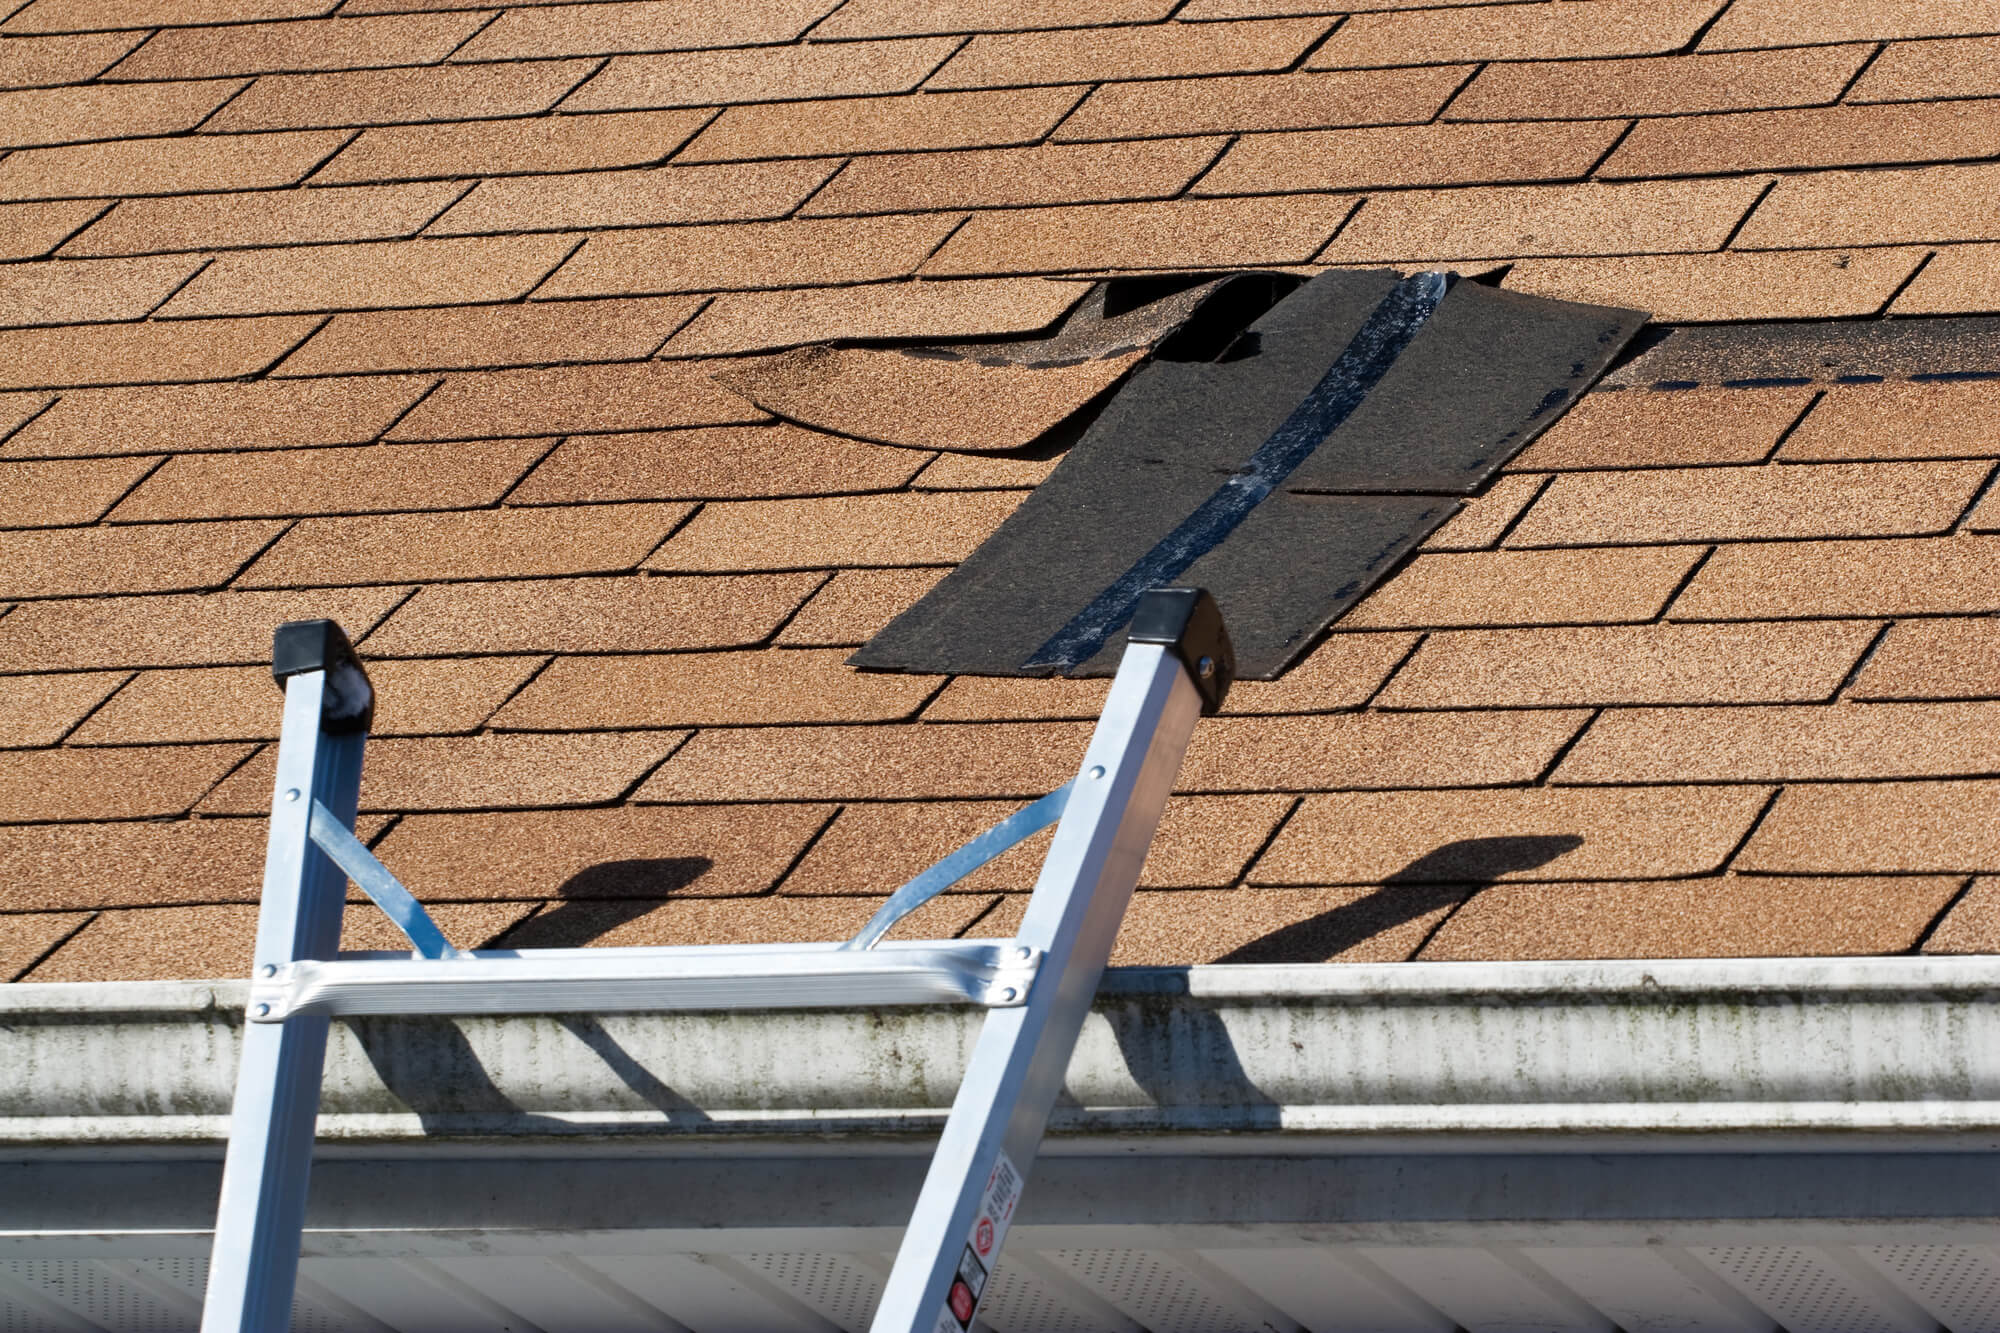 Damaged Roof Shingles Repair - Concord Roofing & Construction